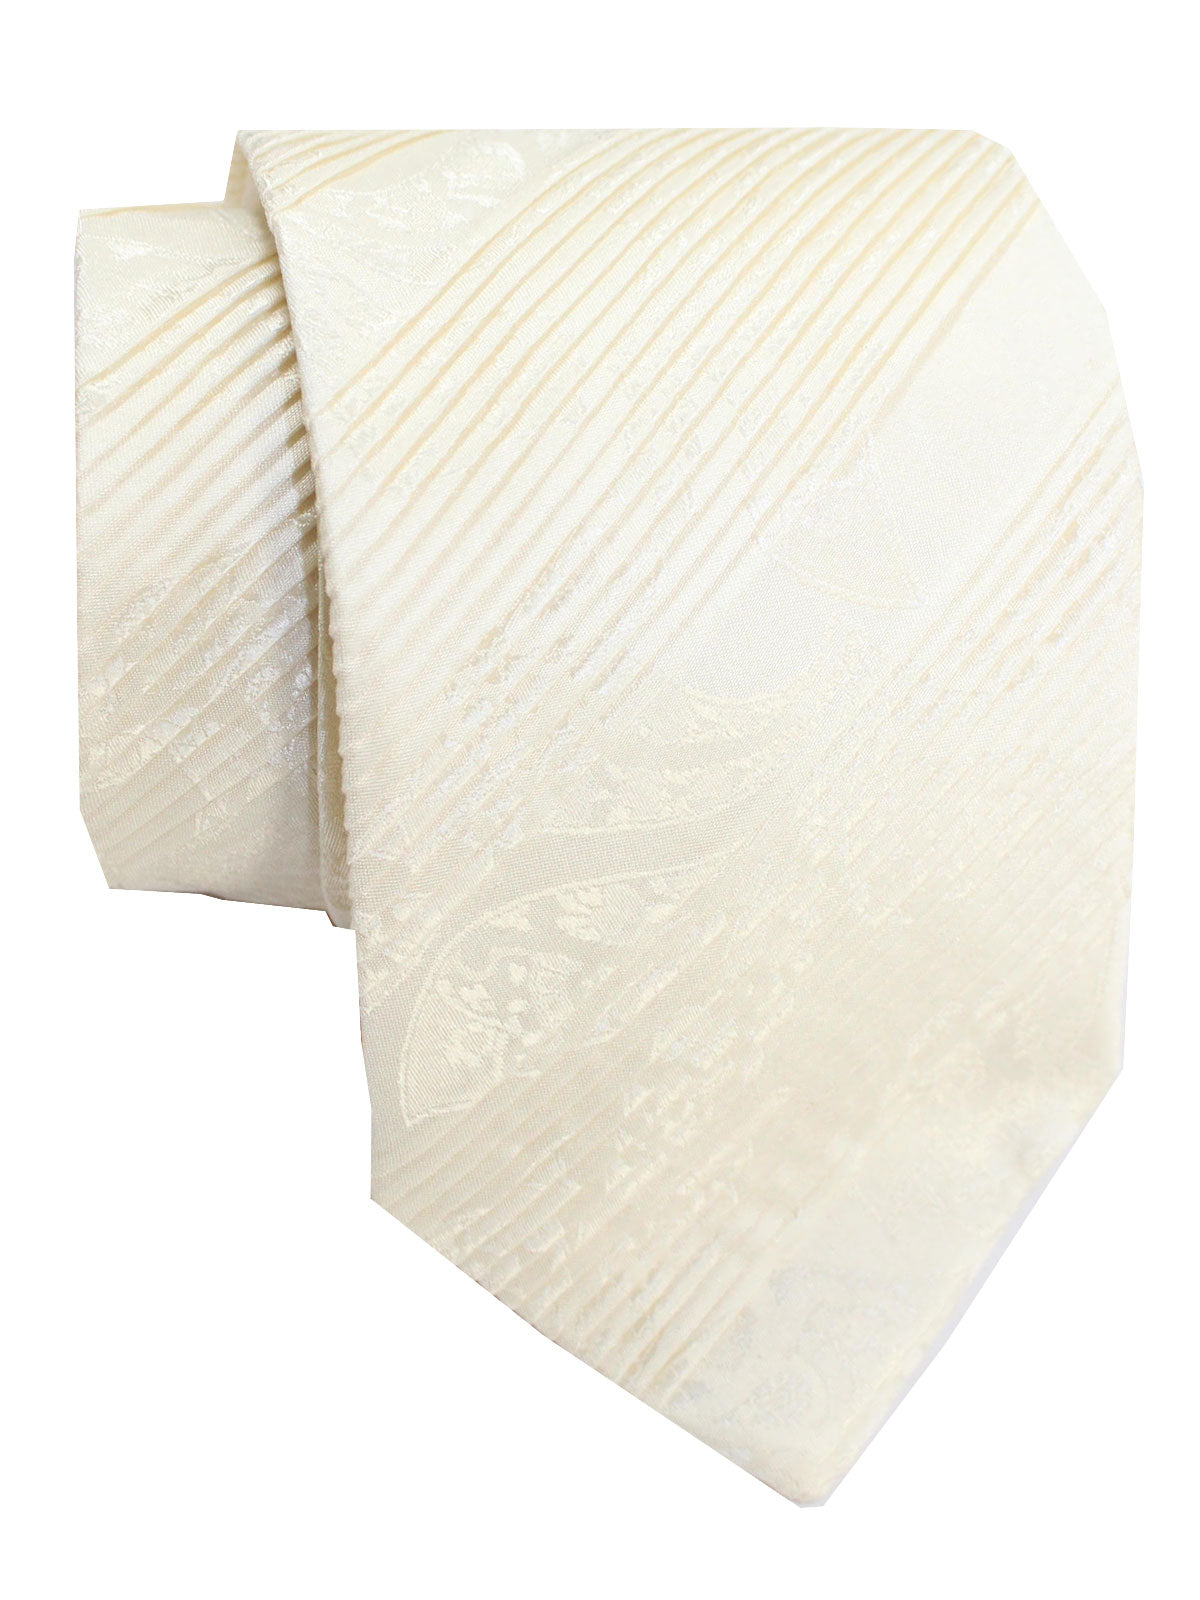 Stefano Ricci Pleated Silk Tie White Ornamental Design